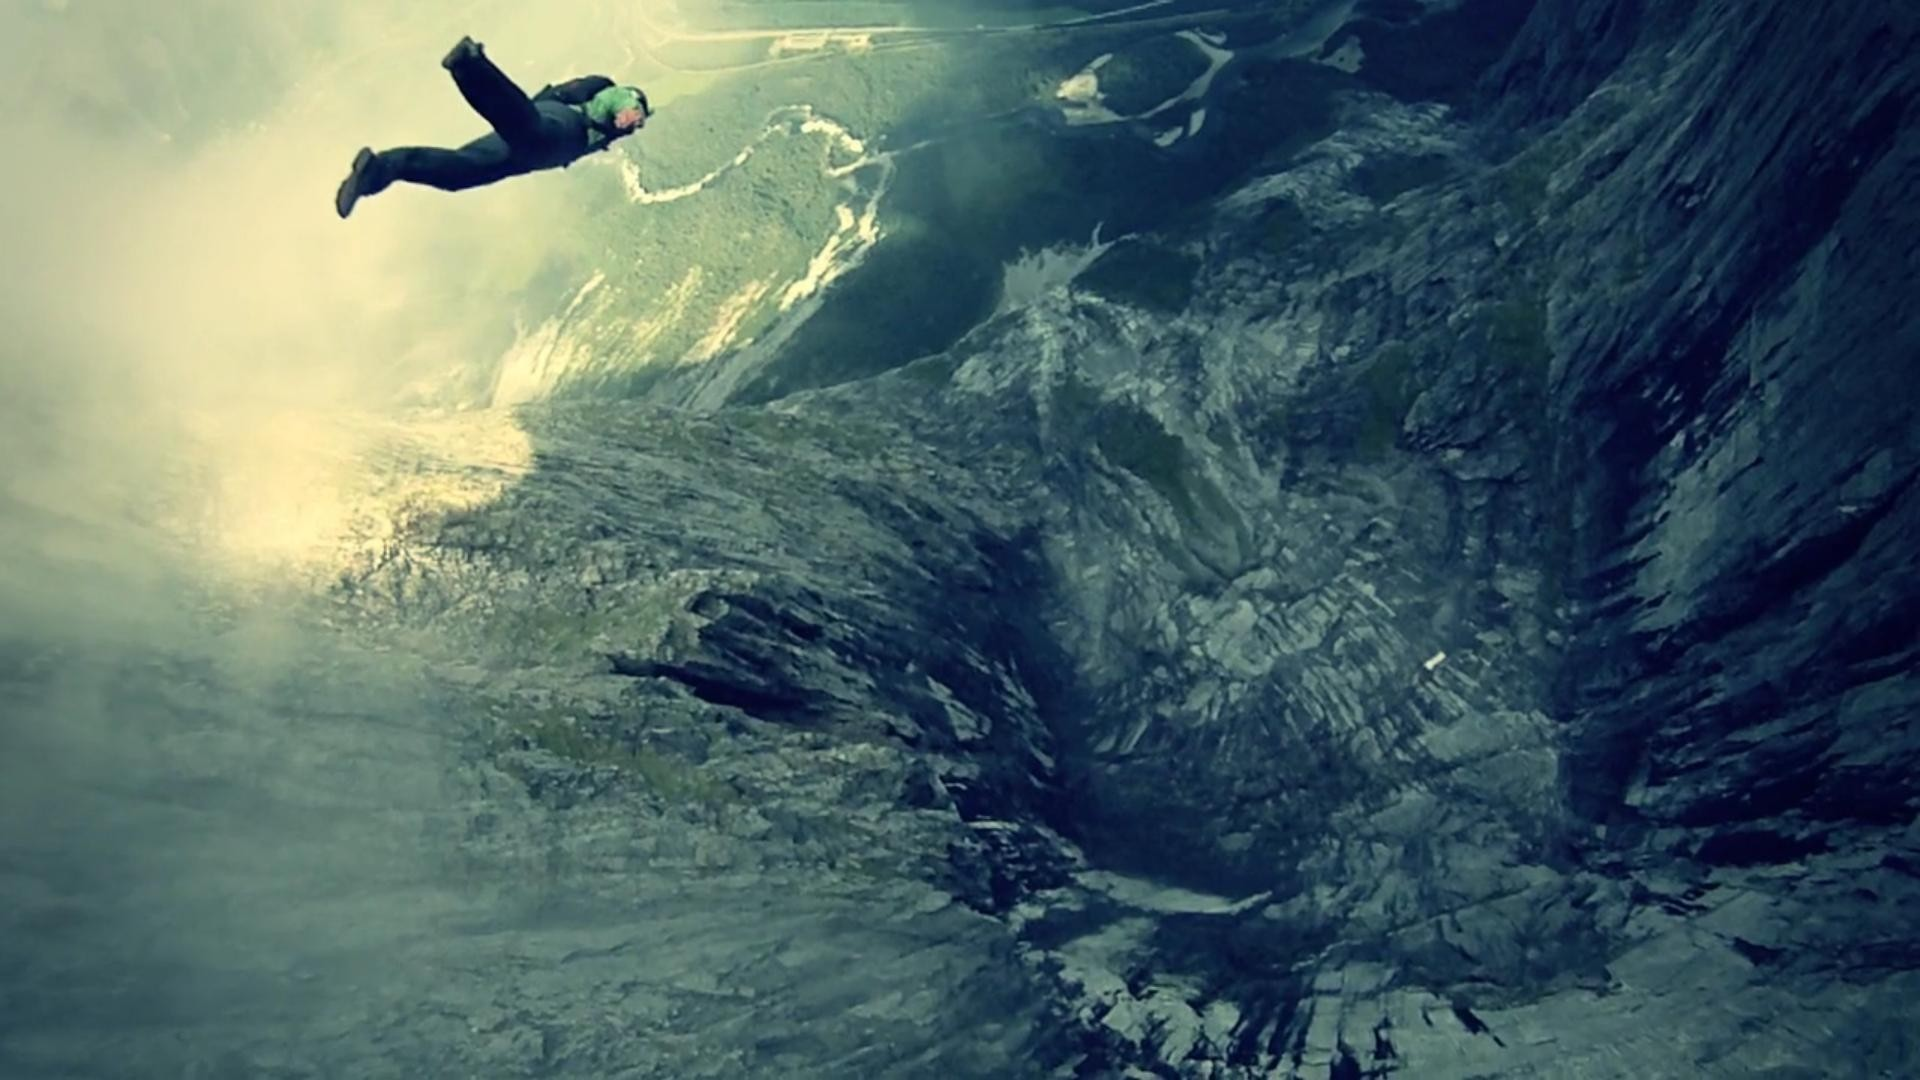 Base Jumping Adventure Sports Wallpaper: Backgrounds - Wallpaper Abyss